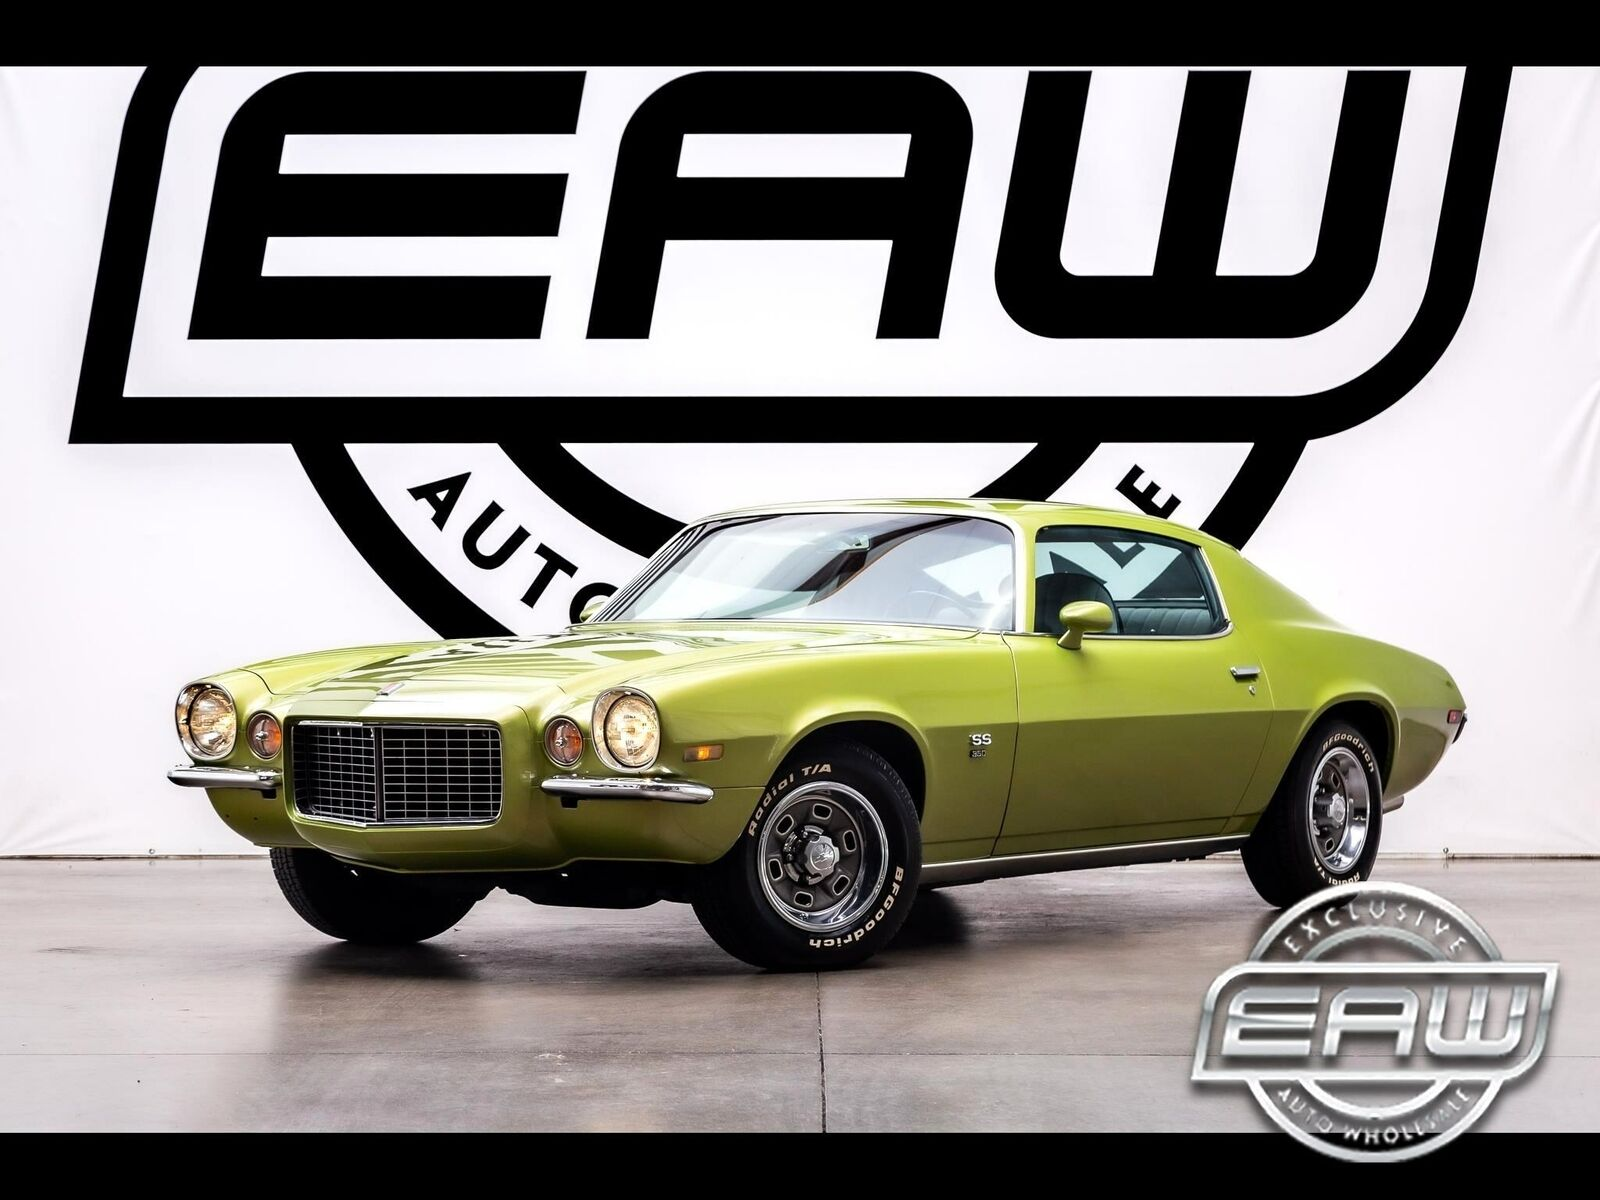 1971 Chevrolet Camaro 2dr Cpe SS 86913 Miles Green Coupe 350 v8 Automatic